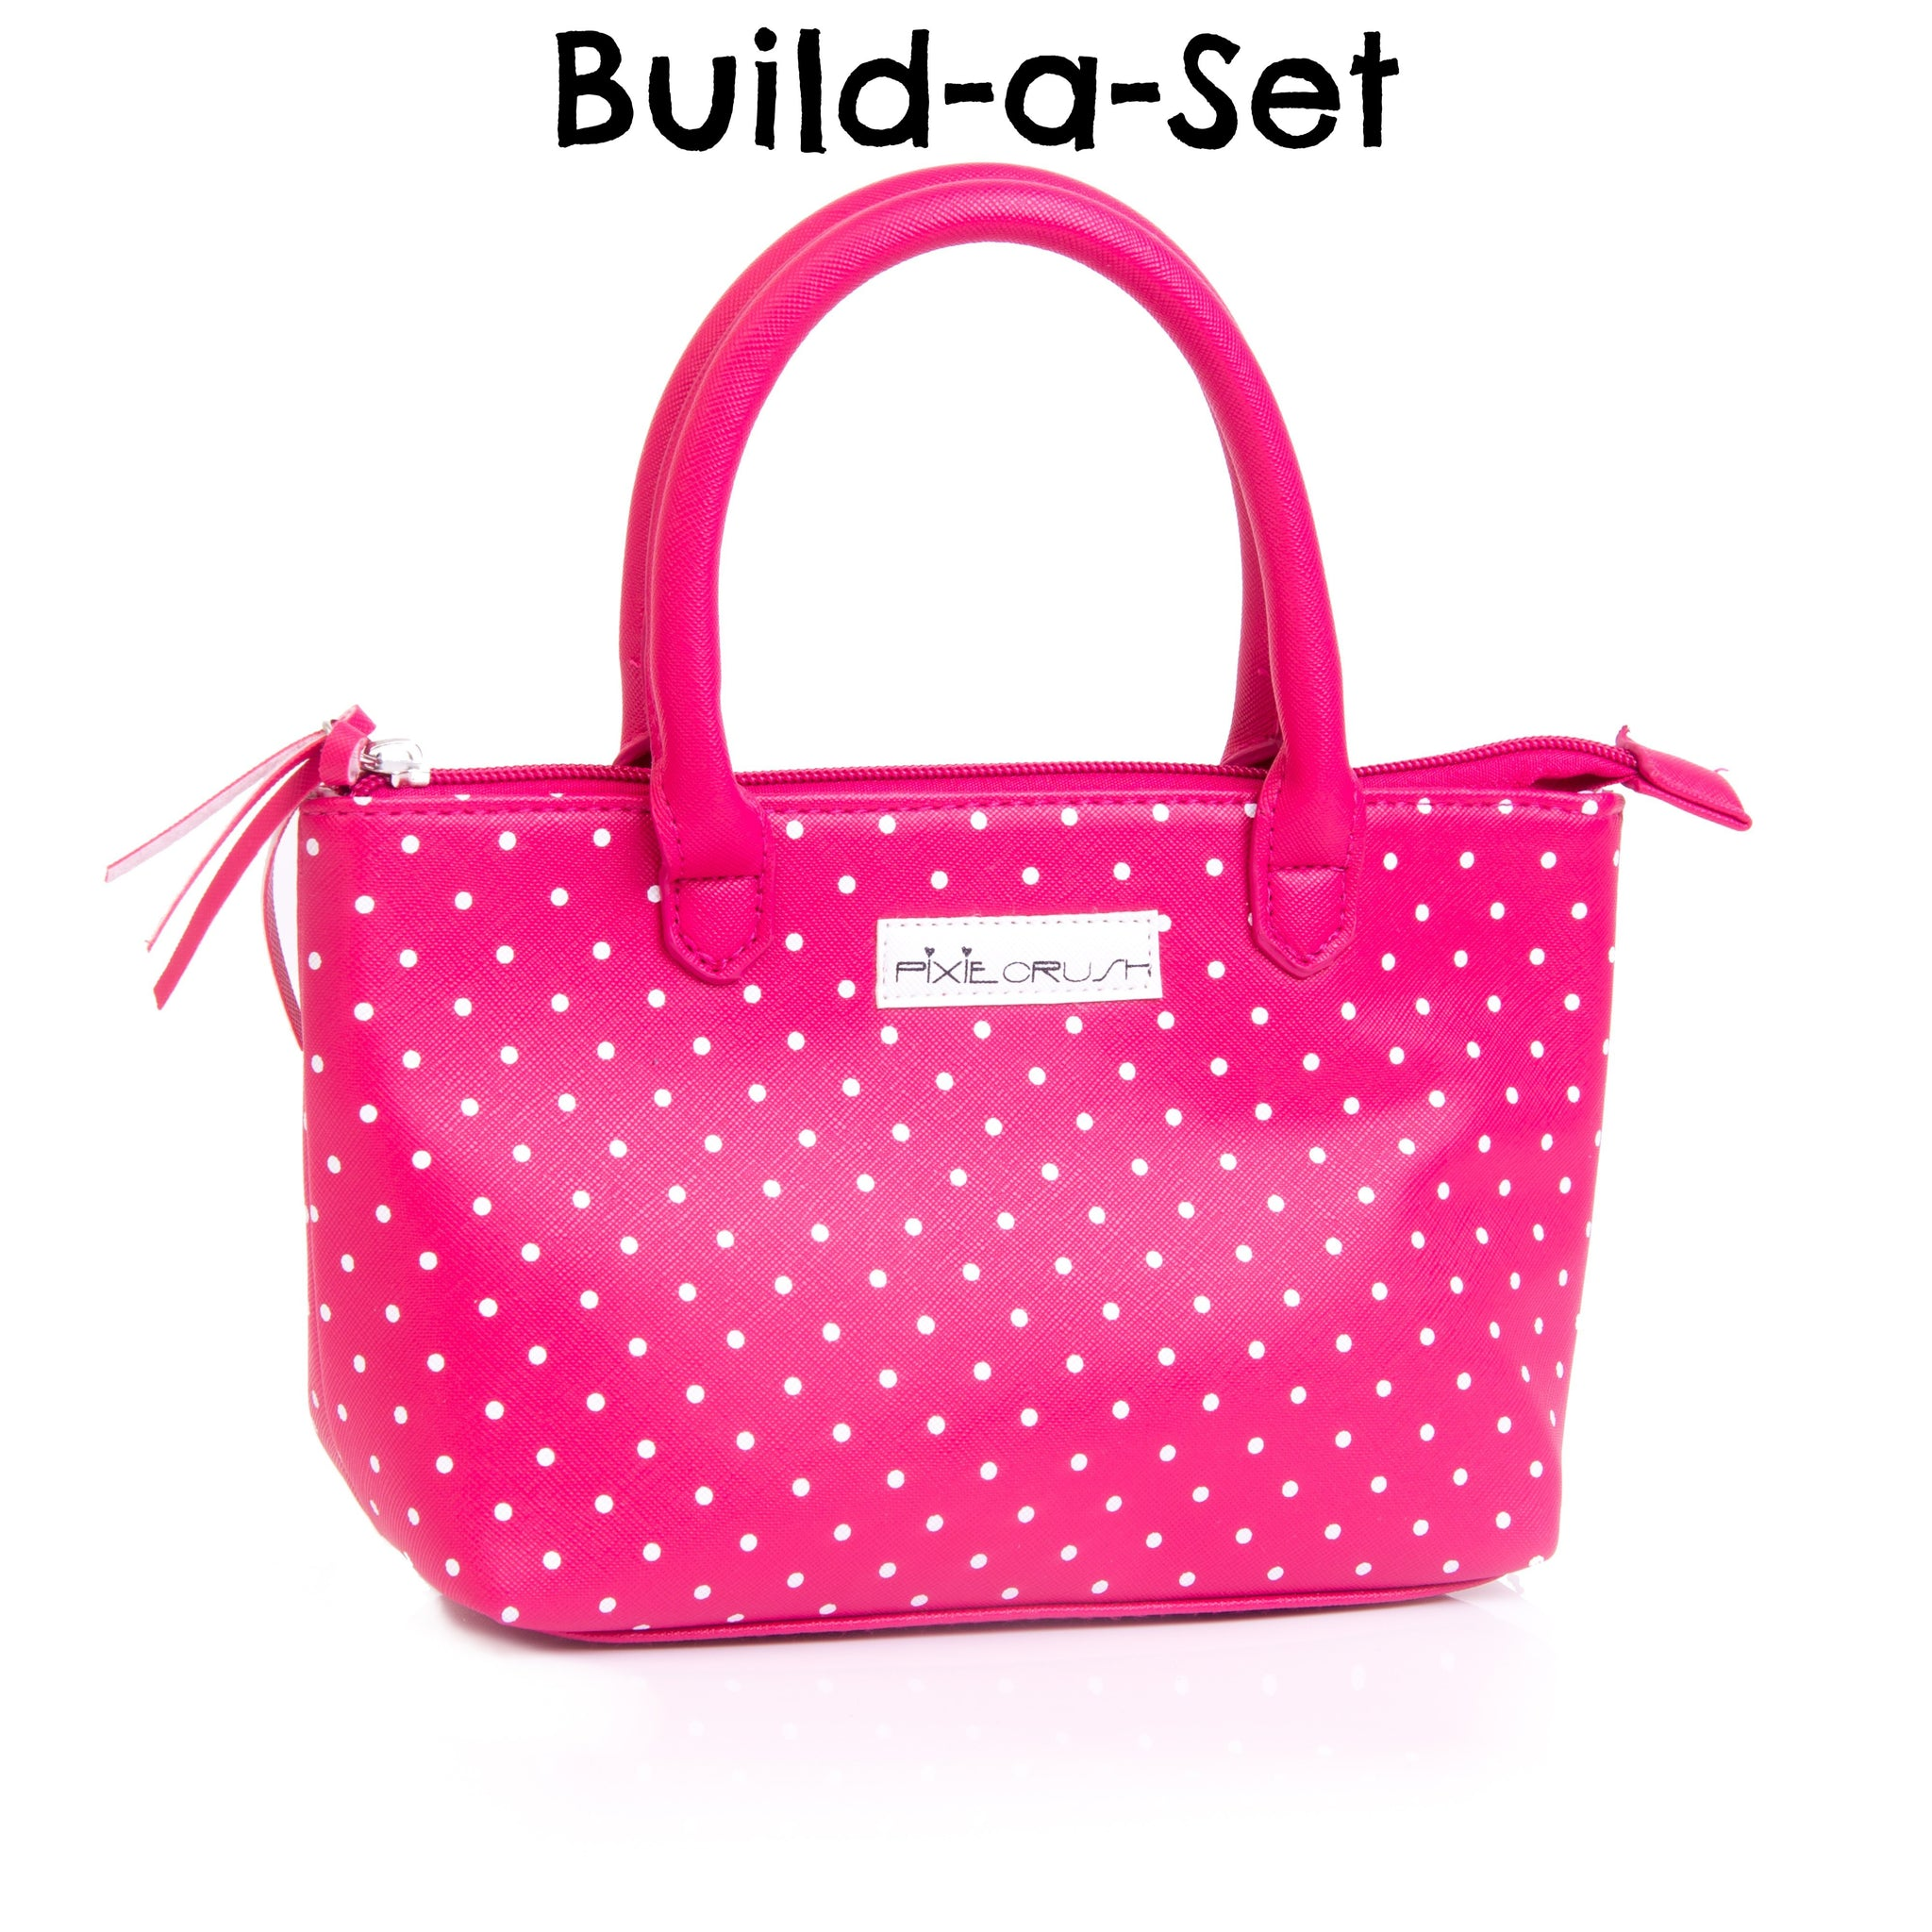 Build-a-Set - Pink Polka Dot Purse